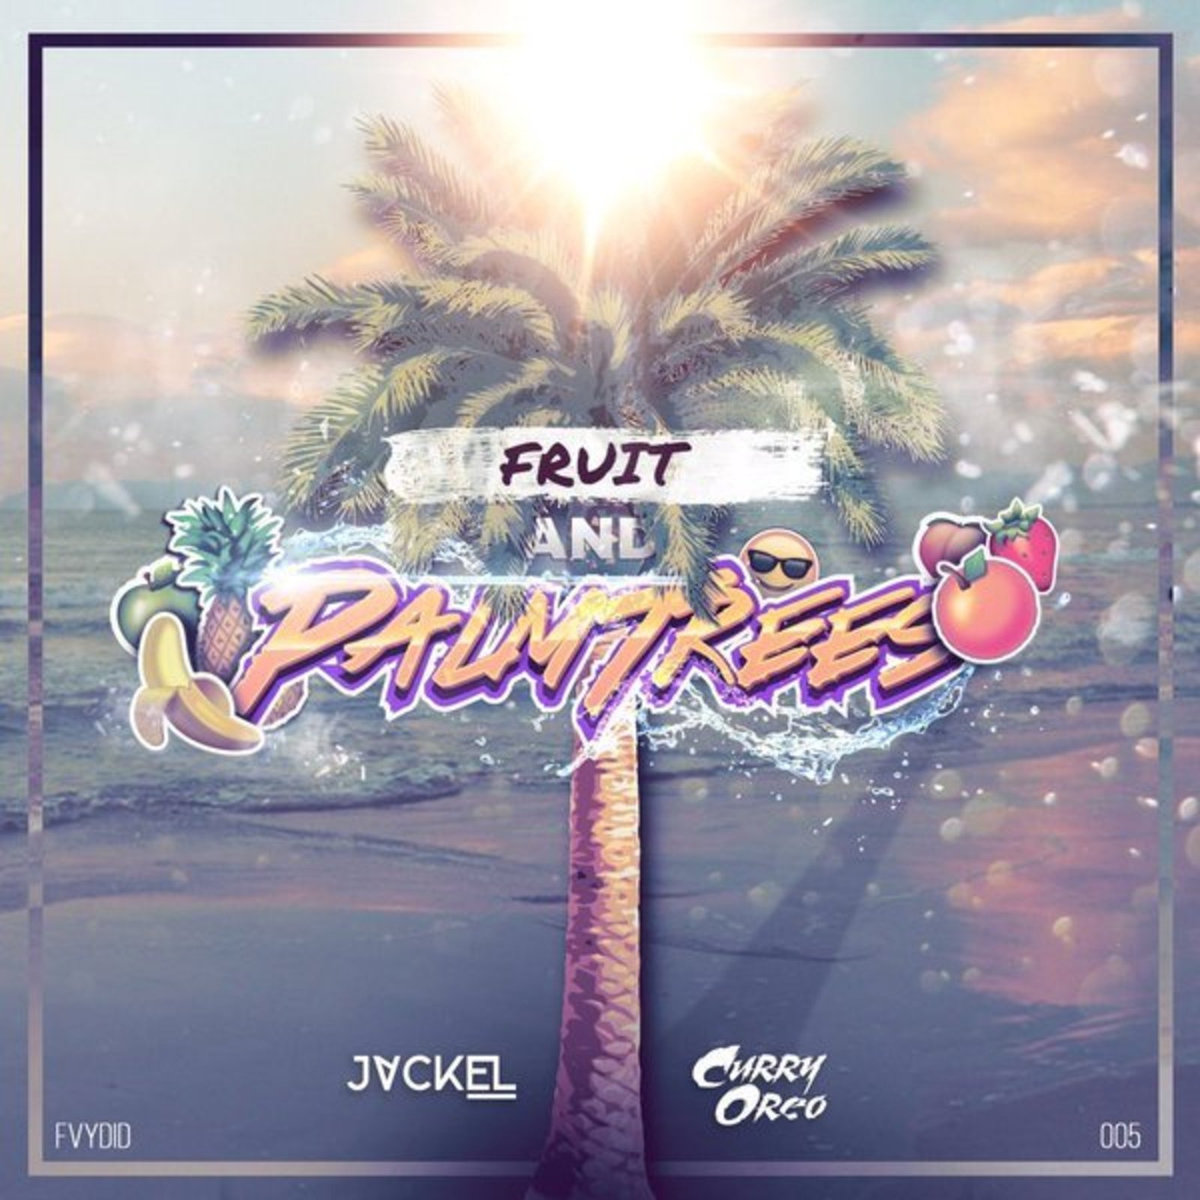 JackEL & Curry Oreo - Fruit and PalmTrees (artwork)